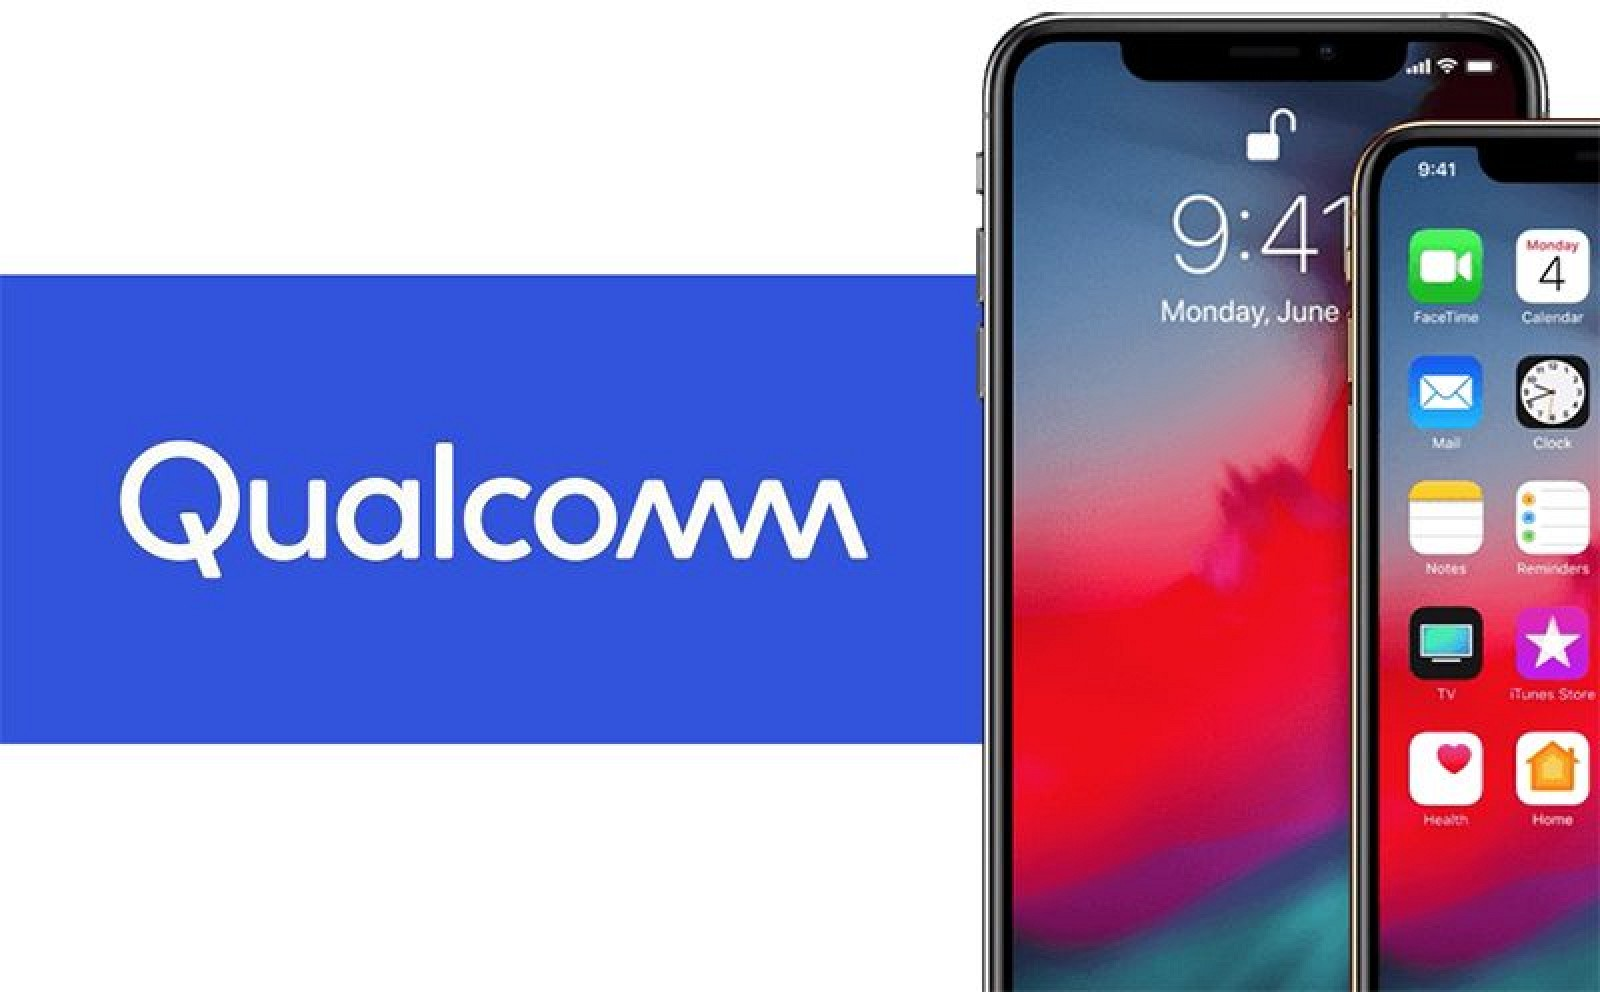 Barclays Believes There's Still a 'Good Chance' Apple will Have to Use Qualcomm 5G Modems in 2020 iPhones